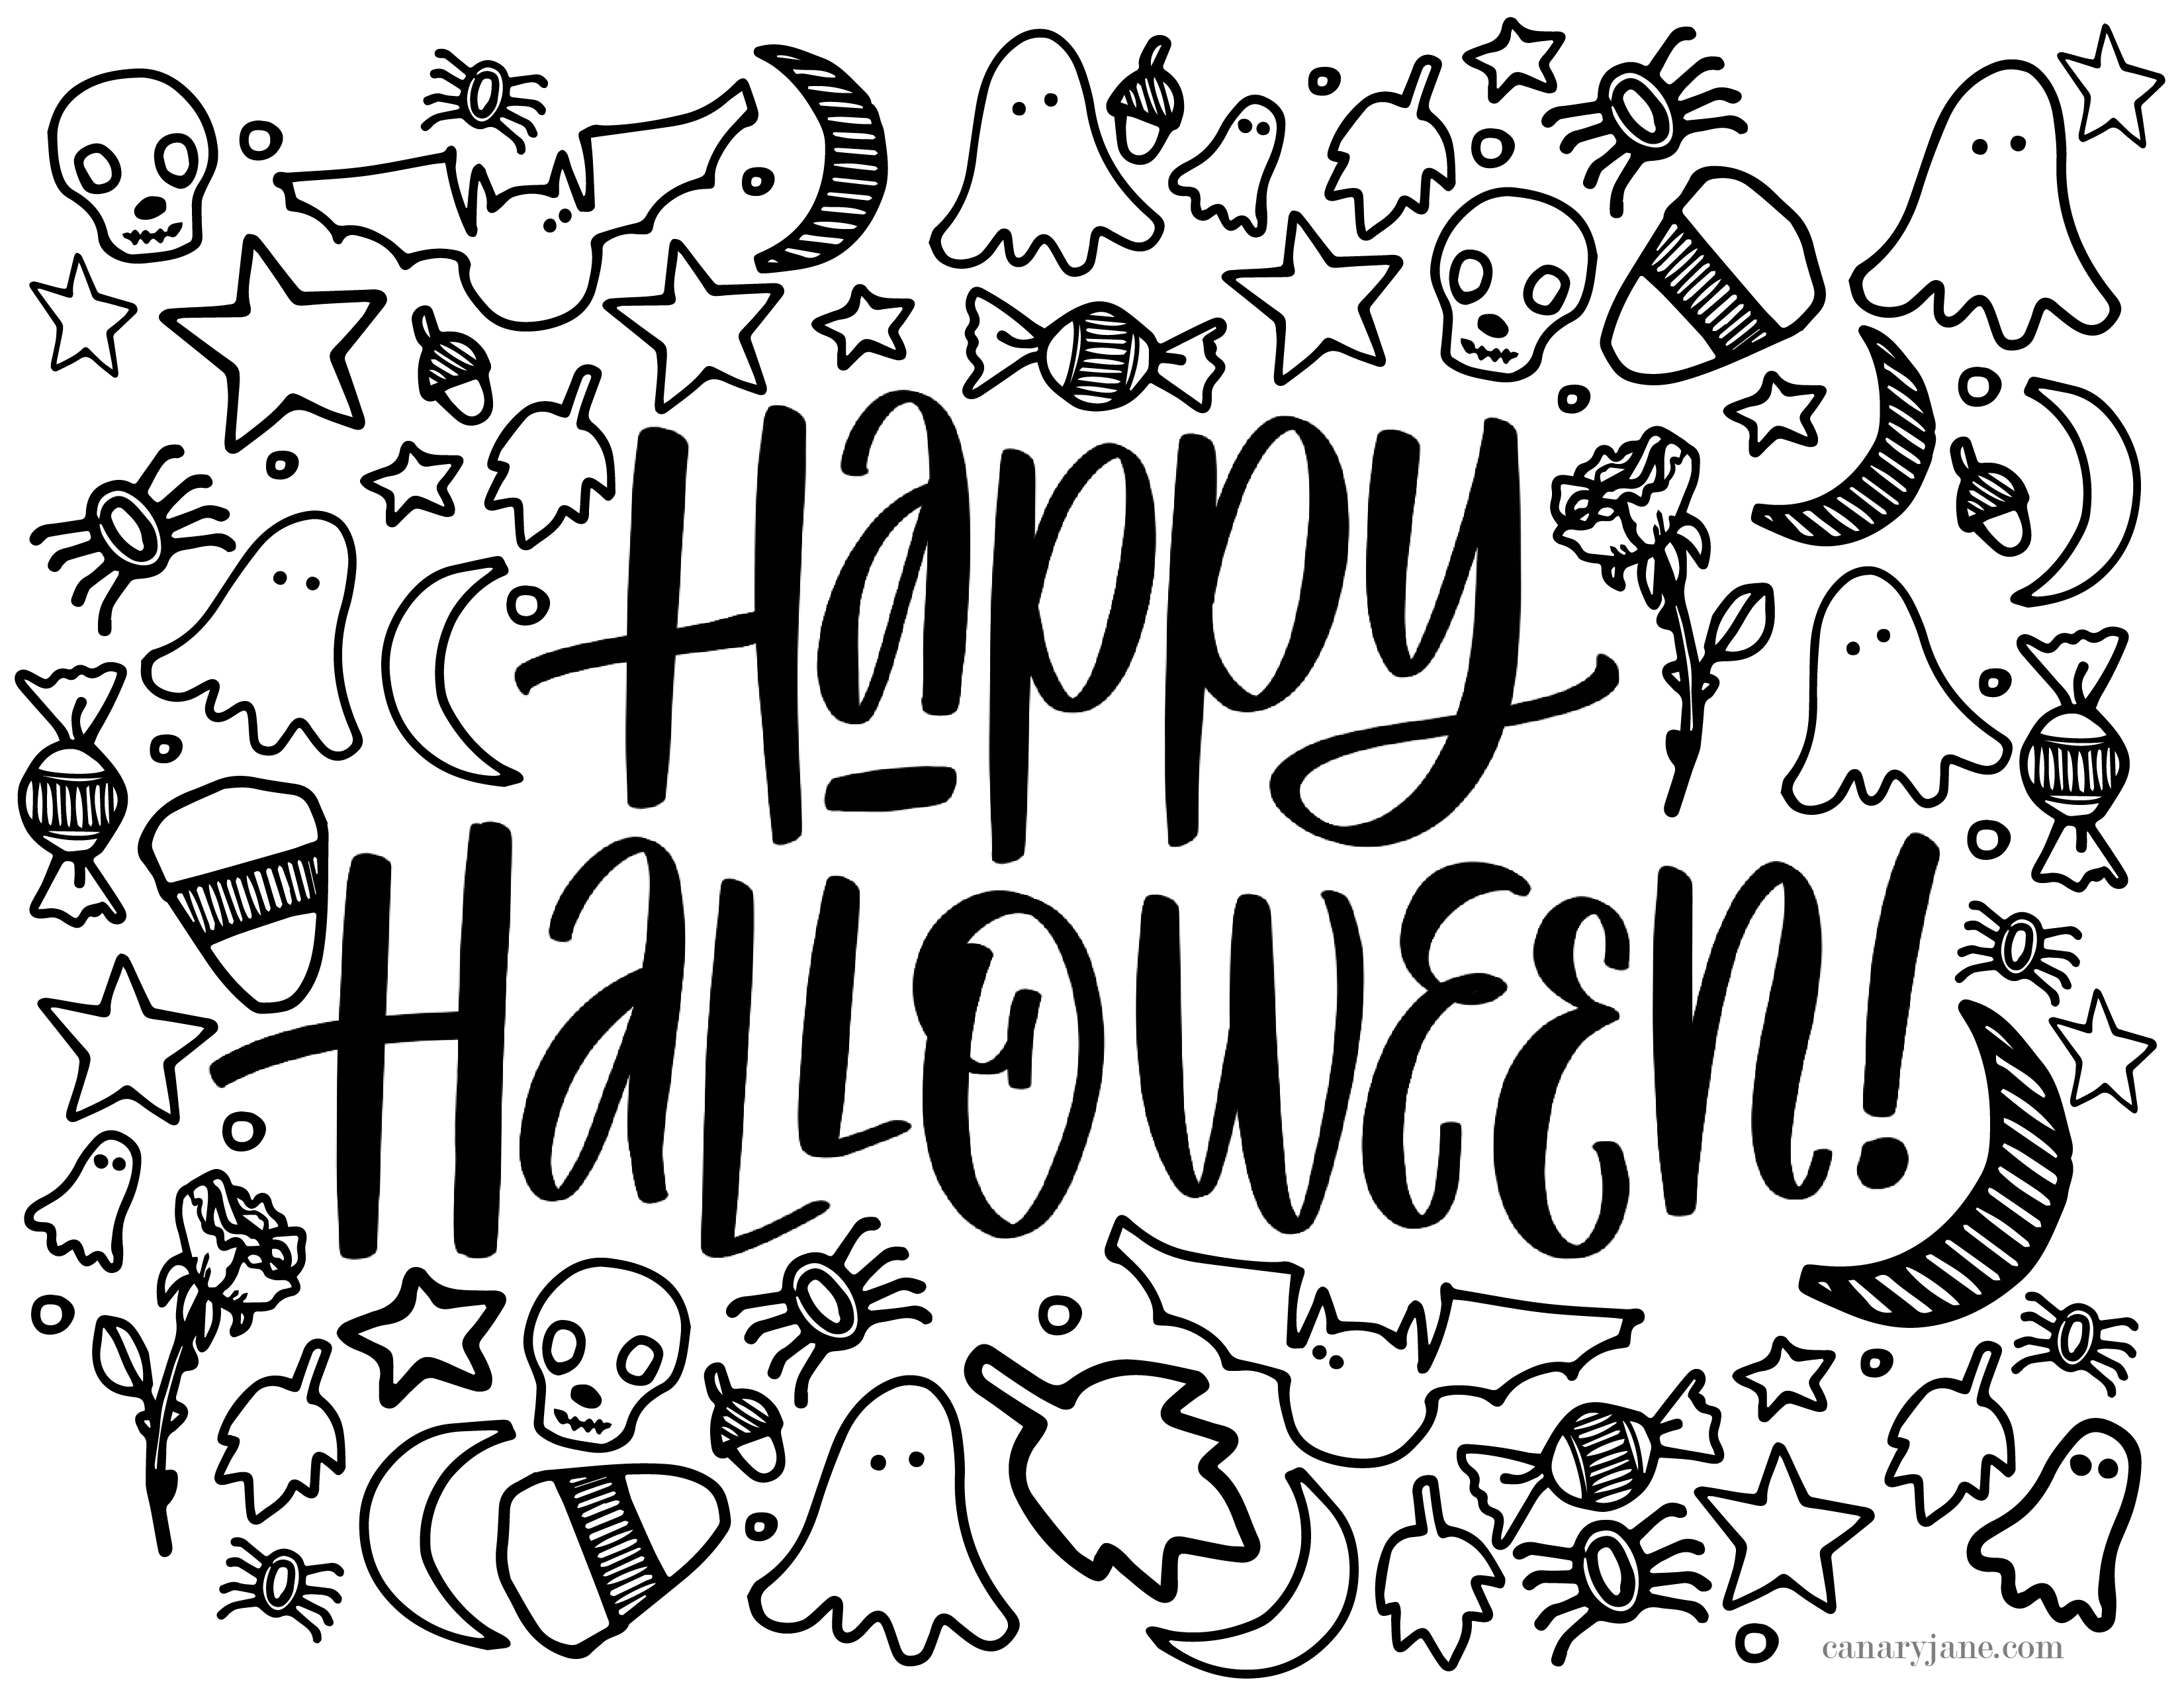 Free Printable Halloween Prints & Coloring Pages - Canary Jane